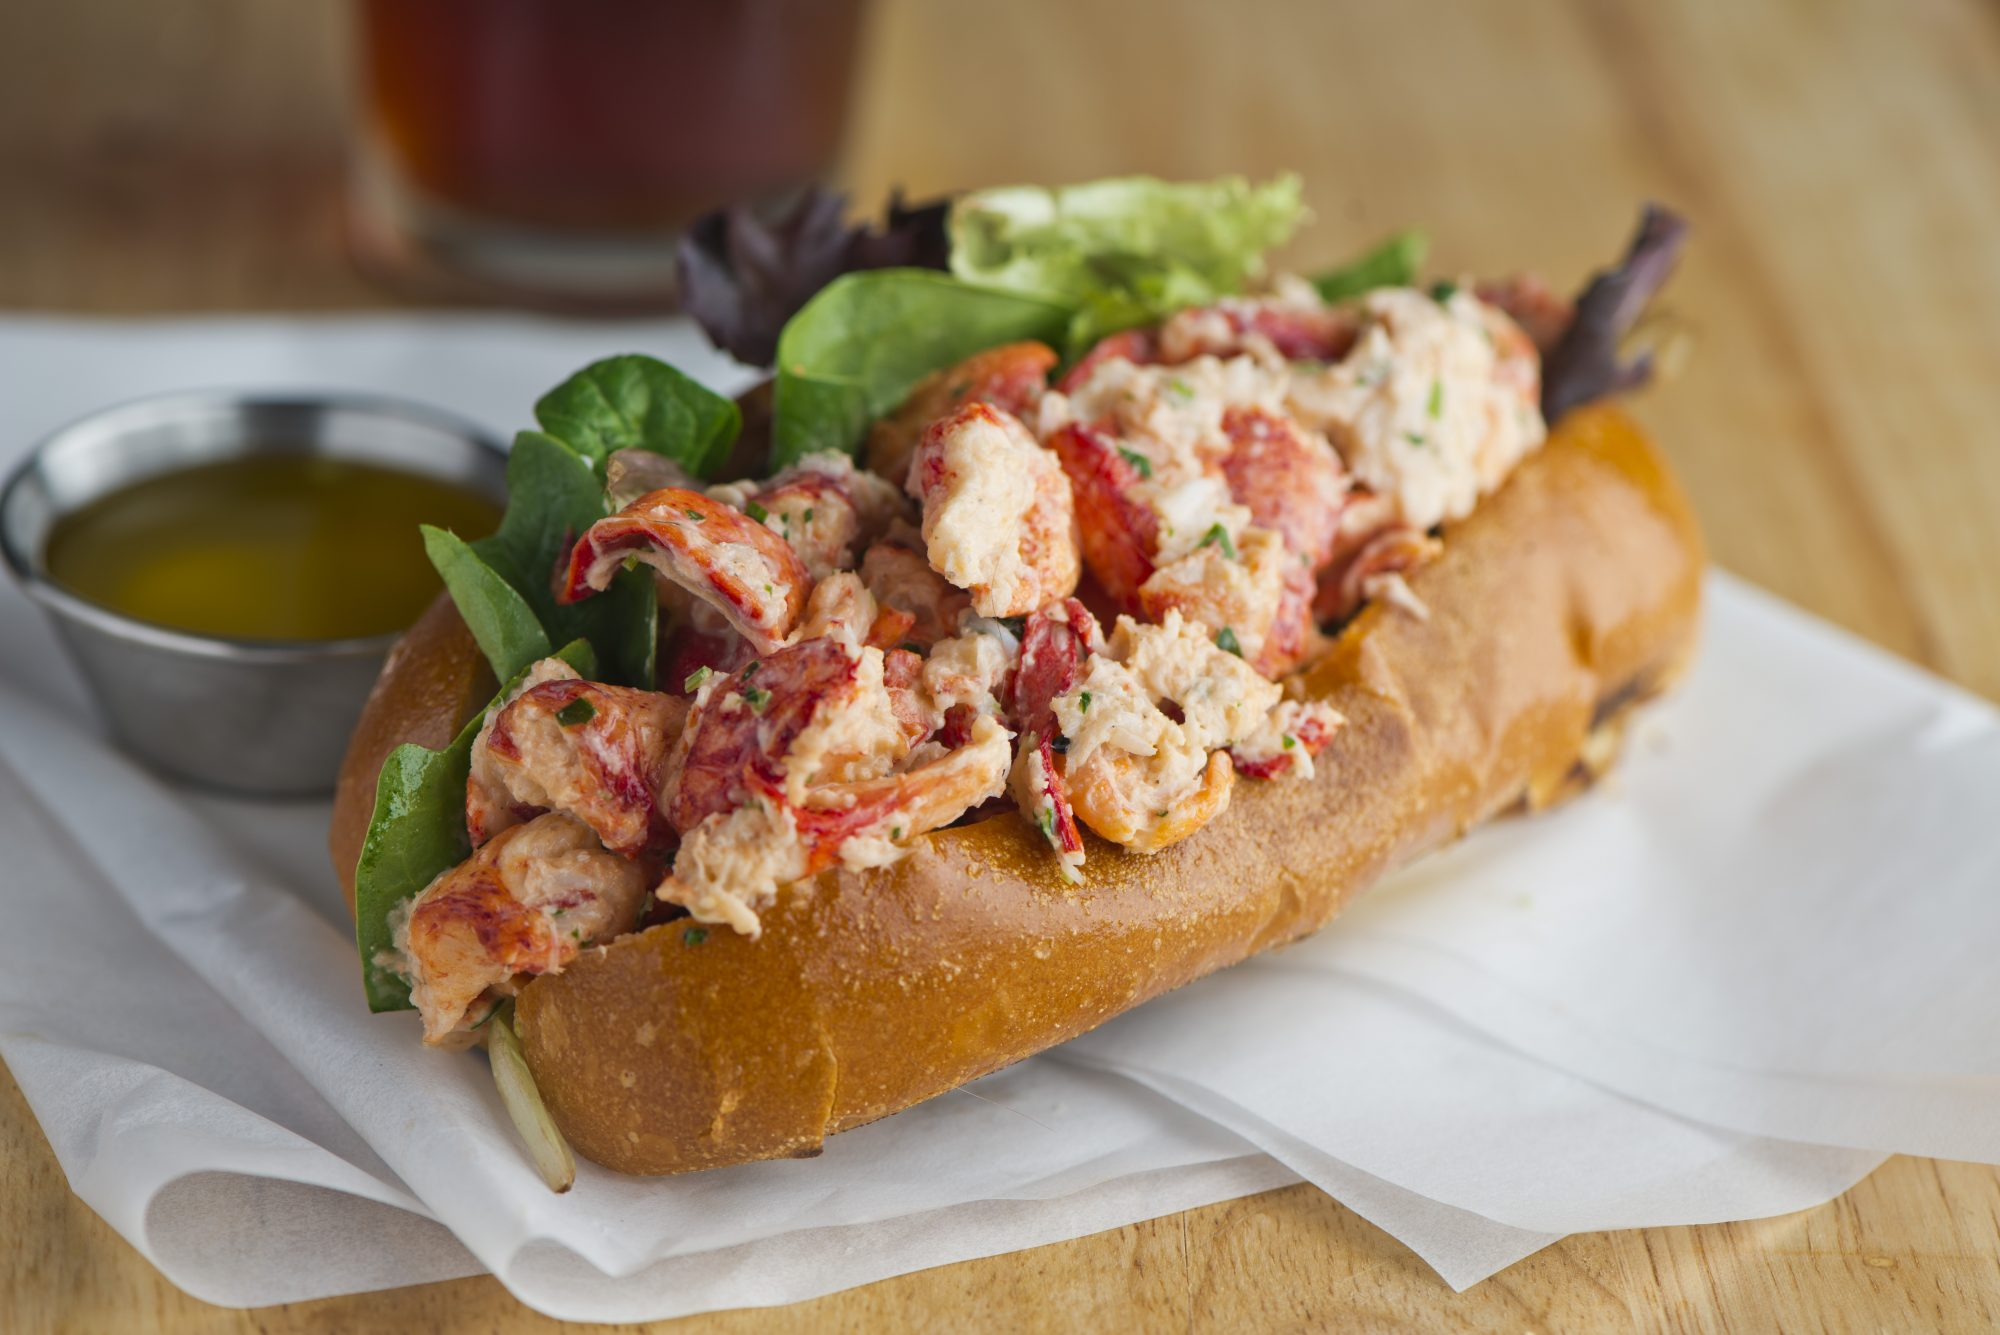 Lobster roll. Maine lobster mixed with mayo, celery, onions, garlic, scallions, chives, lemon juice. Lobster roll on toasted hotdog bun w/ lettuce, tomato, garlic mayo seasoned salt & pepper. Classic American restaurant or diner lunch sandwich favorite.